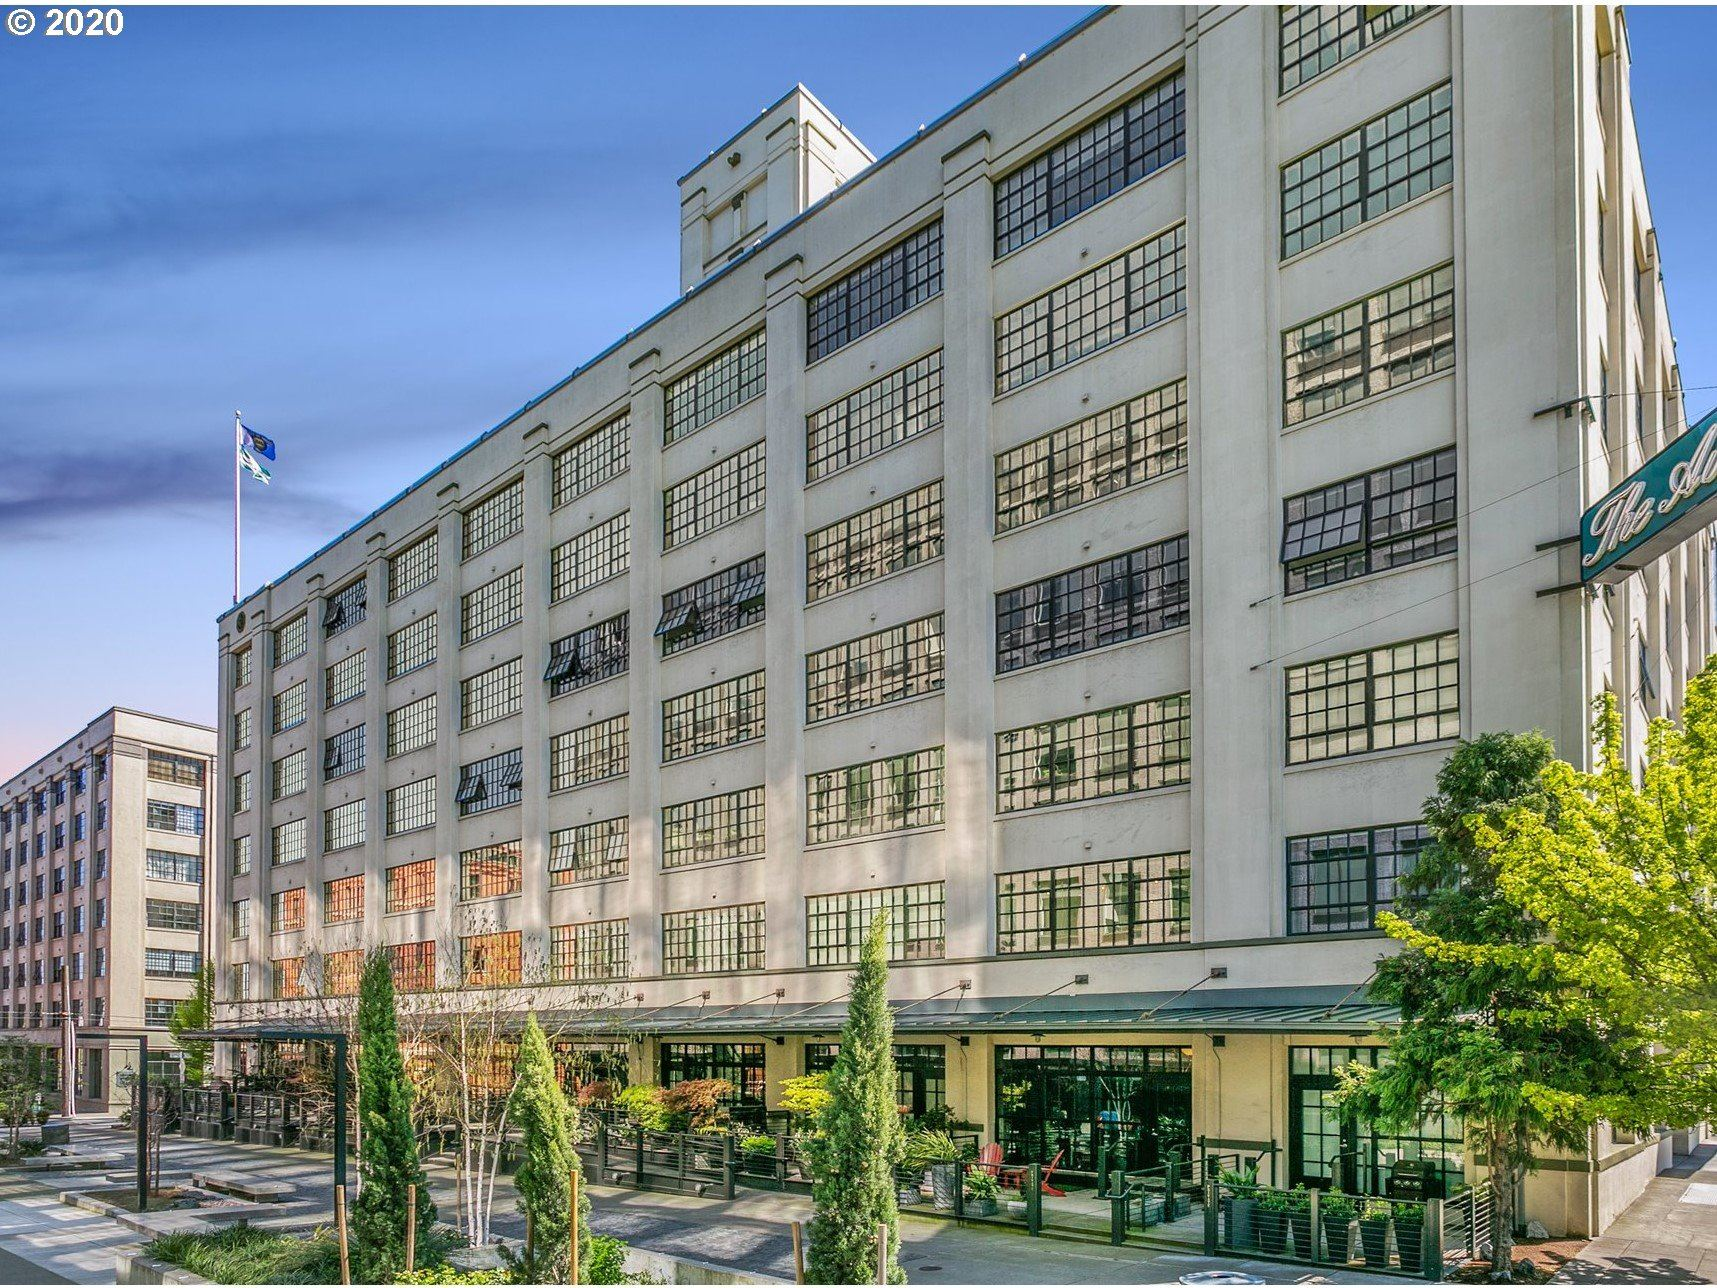 1400 NW IRVING ST #615, Portland, OR 97209 - MLS#: 21344200